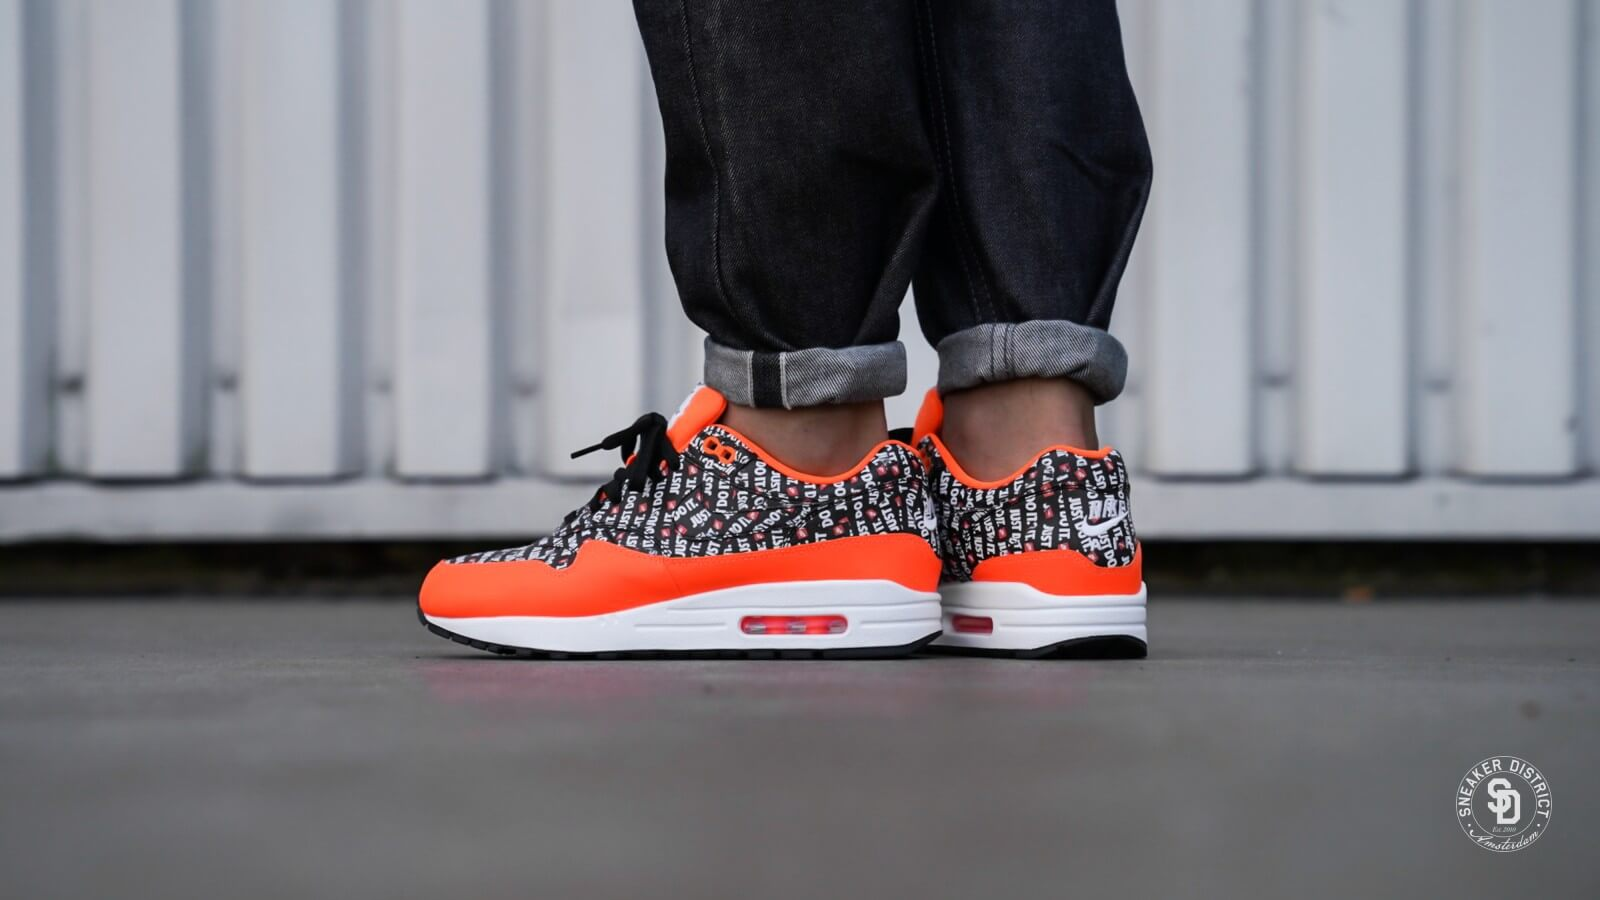 Nike Air Max 1 Premium BlackTotal orange White 875844 008